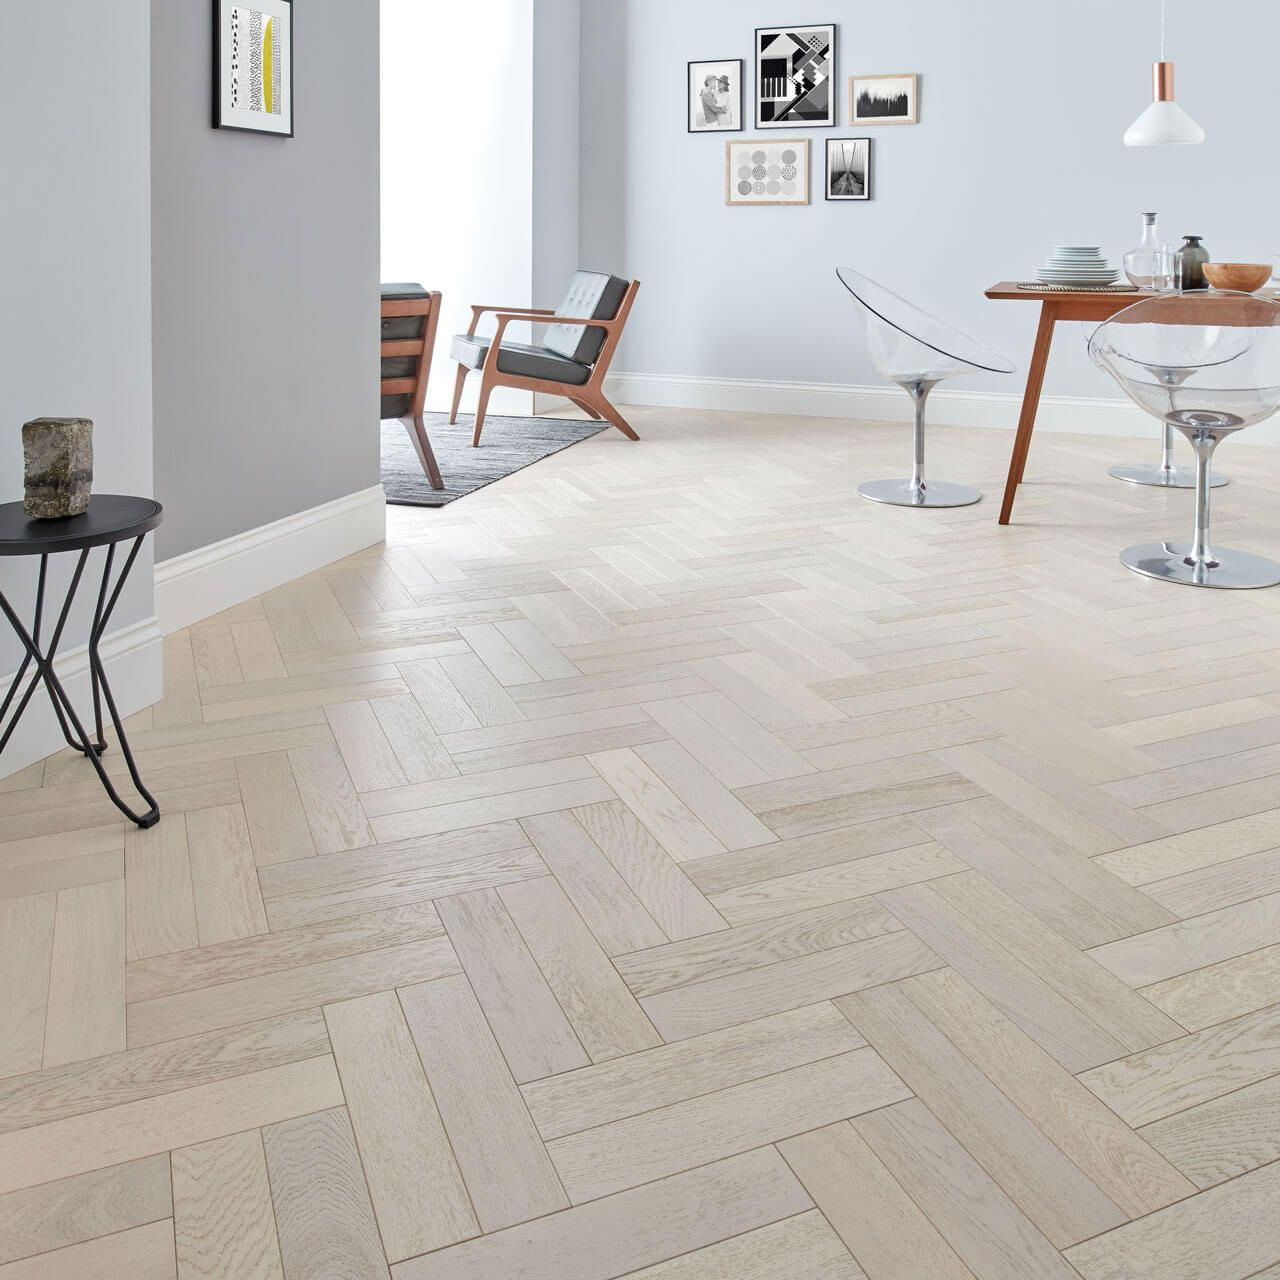 Woodpecker Goodrich Herringbone Whitened Oak Brushed & Matt Lacquered Engineered Wood FlooringGoodrich Herringbone Parquet flooring is the most traditional and Elegant engineered wood floor on the market. Most seen in Castles, manors and old school buildings; this flooring has now crept its way into stylish modern and traditional homes.This Woodpecker Goodrich Herringbone Whitened Oak engineered wood flooring has a tongue and groove joint system and can be fully stuck down or floated on to an un